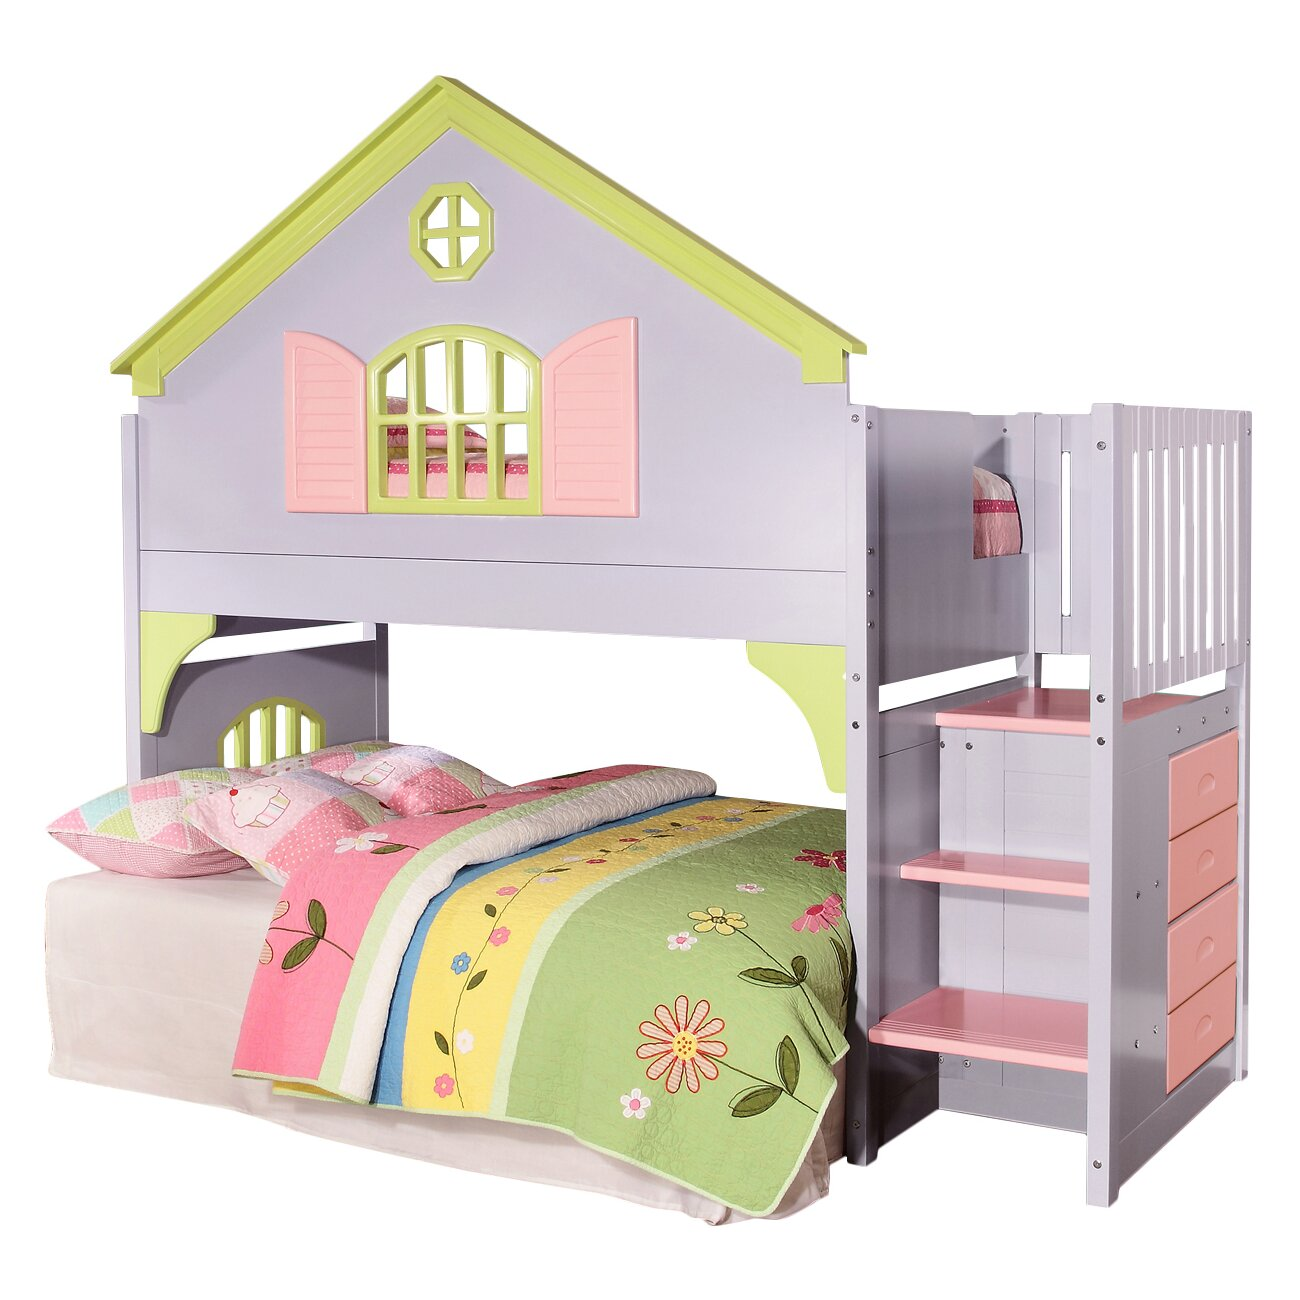 donco kids donco kids doll house twin loft bed reviews wayfair. Black Bedroom Furniture Sets. Home Design Ideas